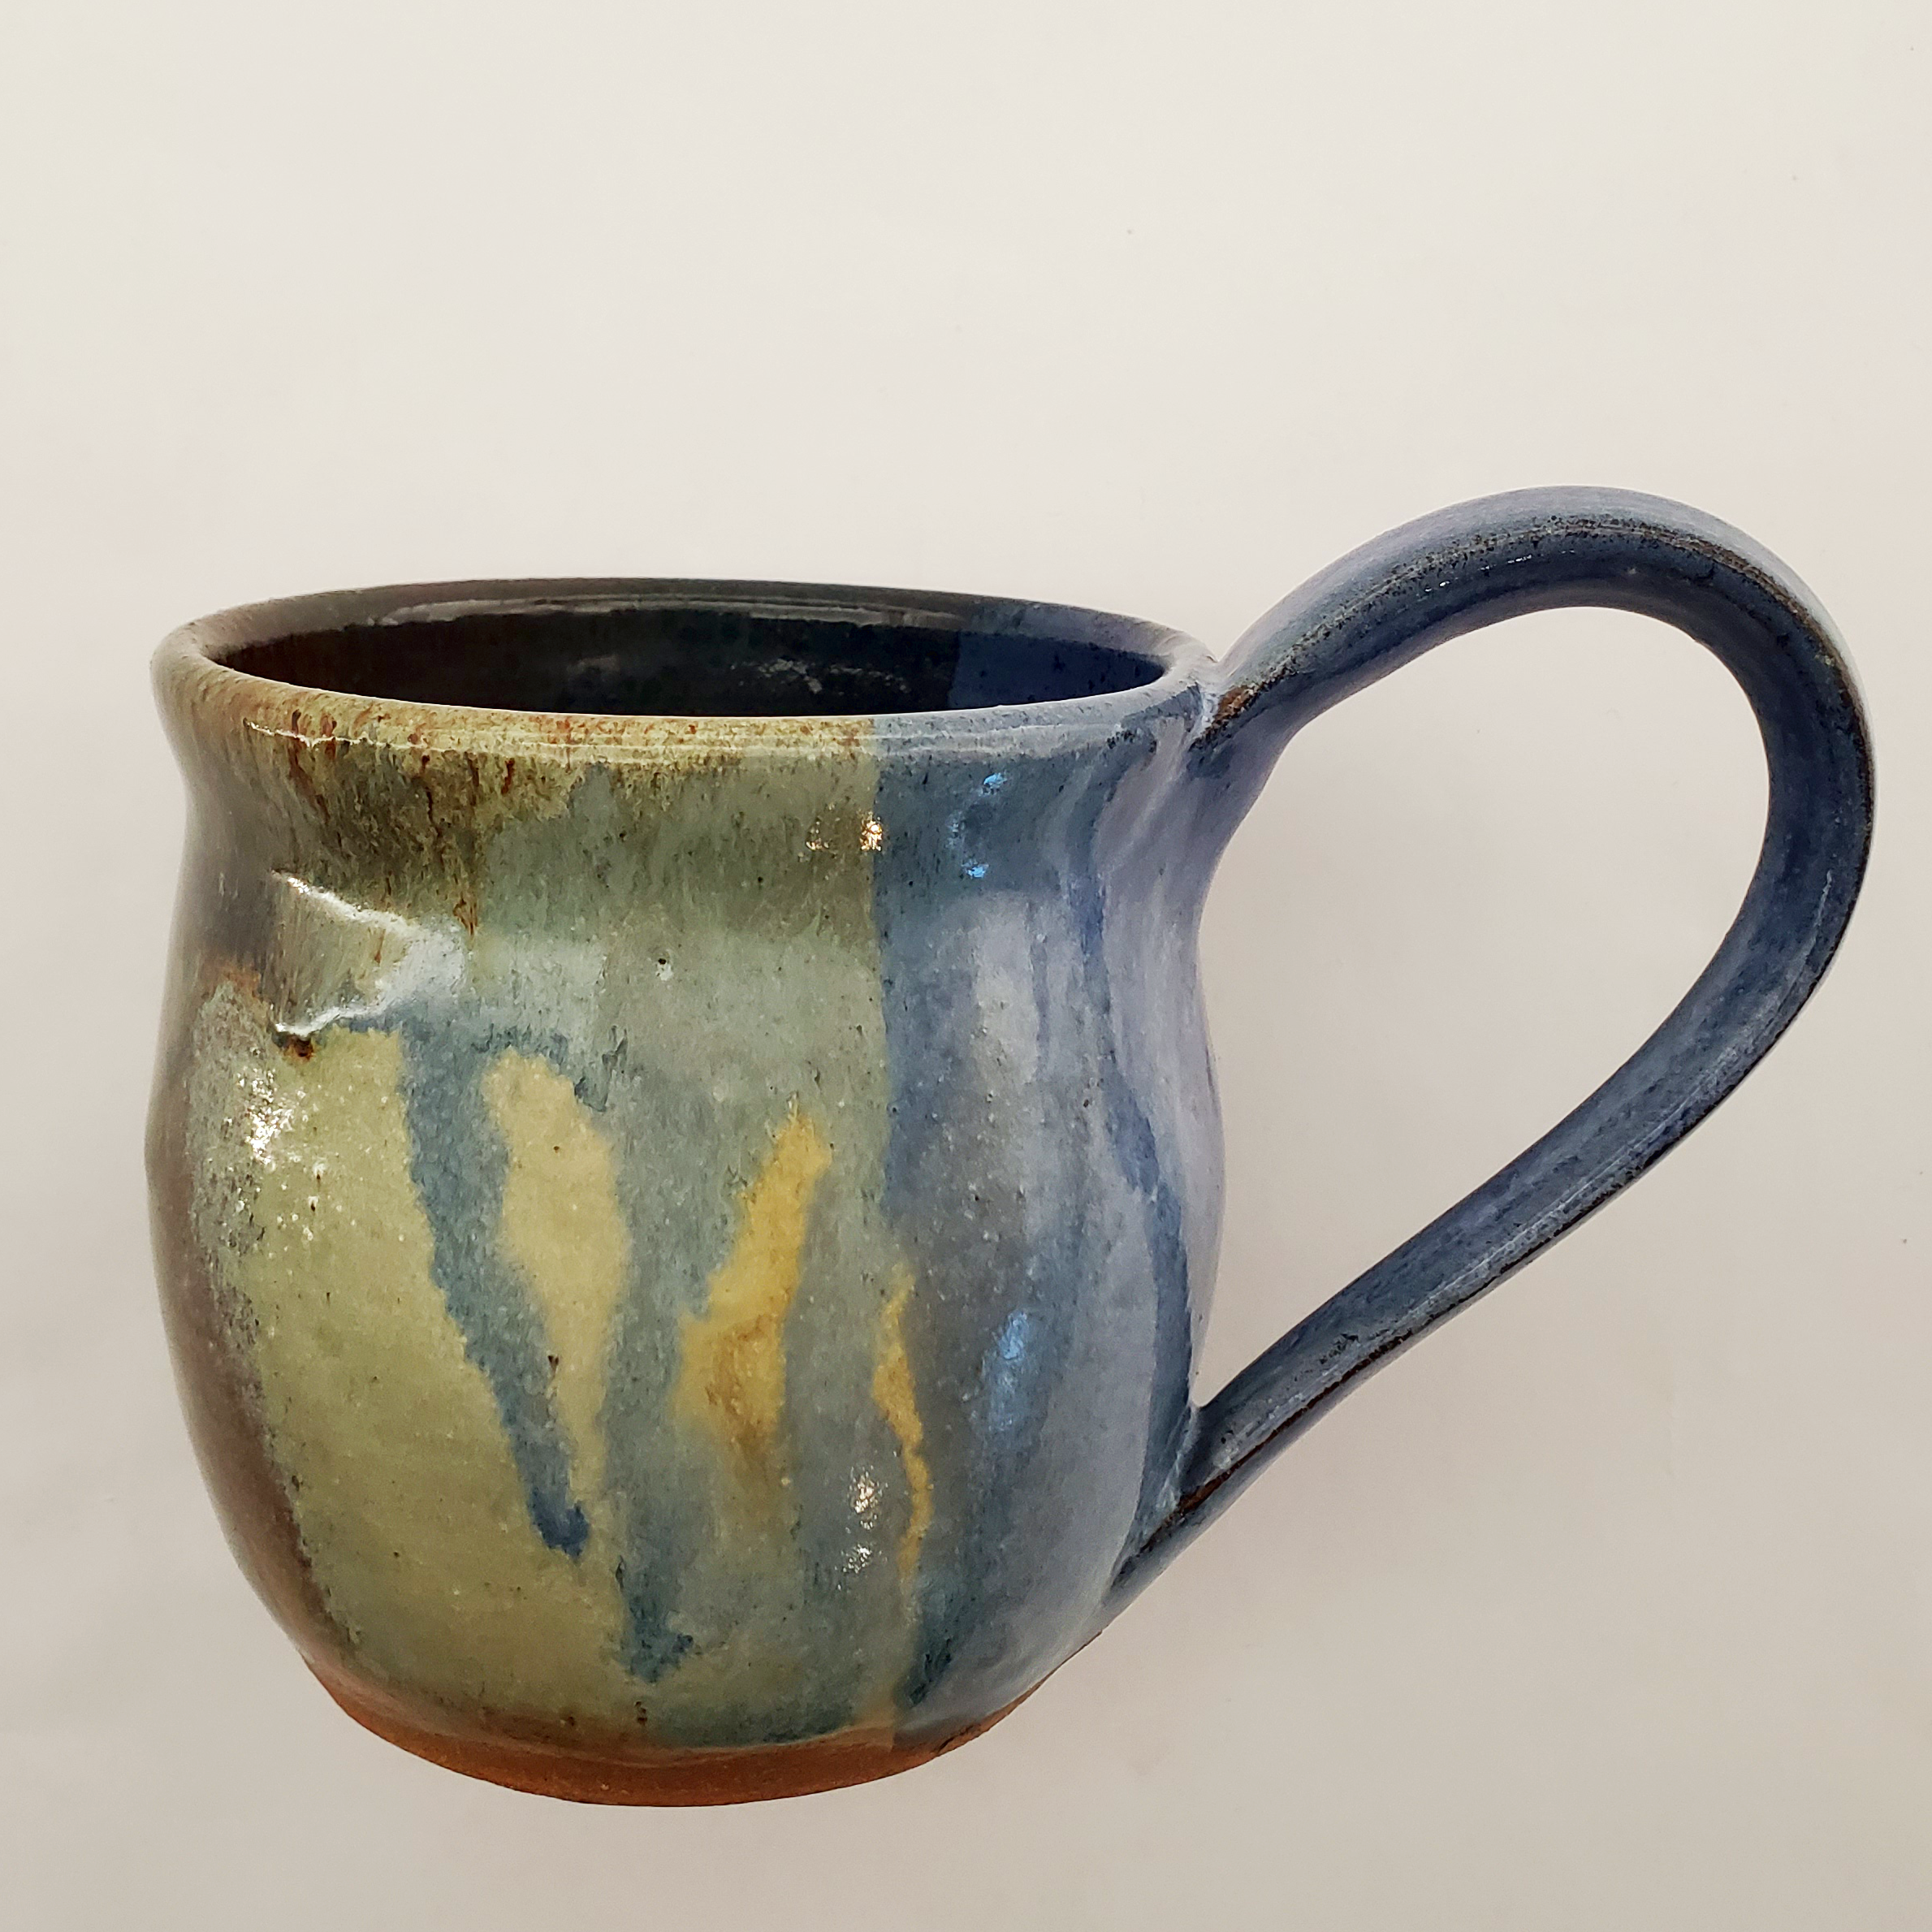 Beautiful handmade mugs in green, blue, red, and orange hues with stylish handles. Handmade on Vashon Island by Abraham McBride Pottery. Local ceramics artist, Seattle Washington.